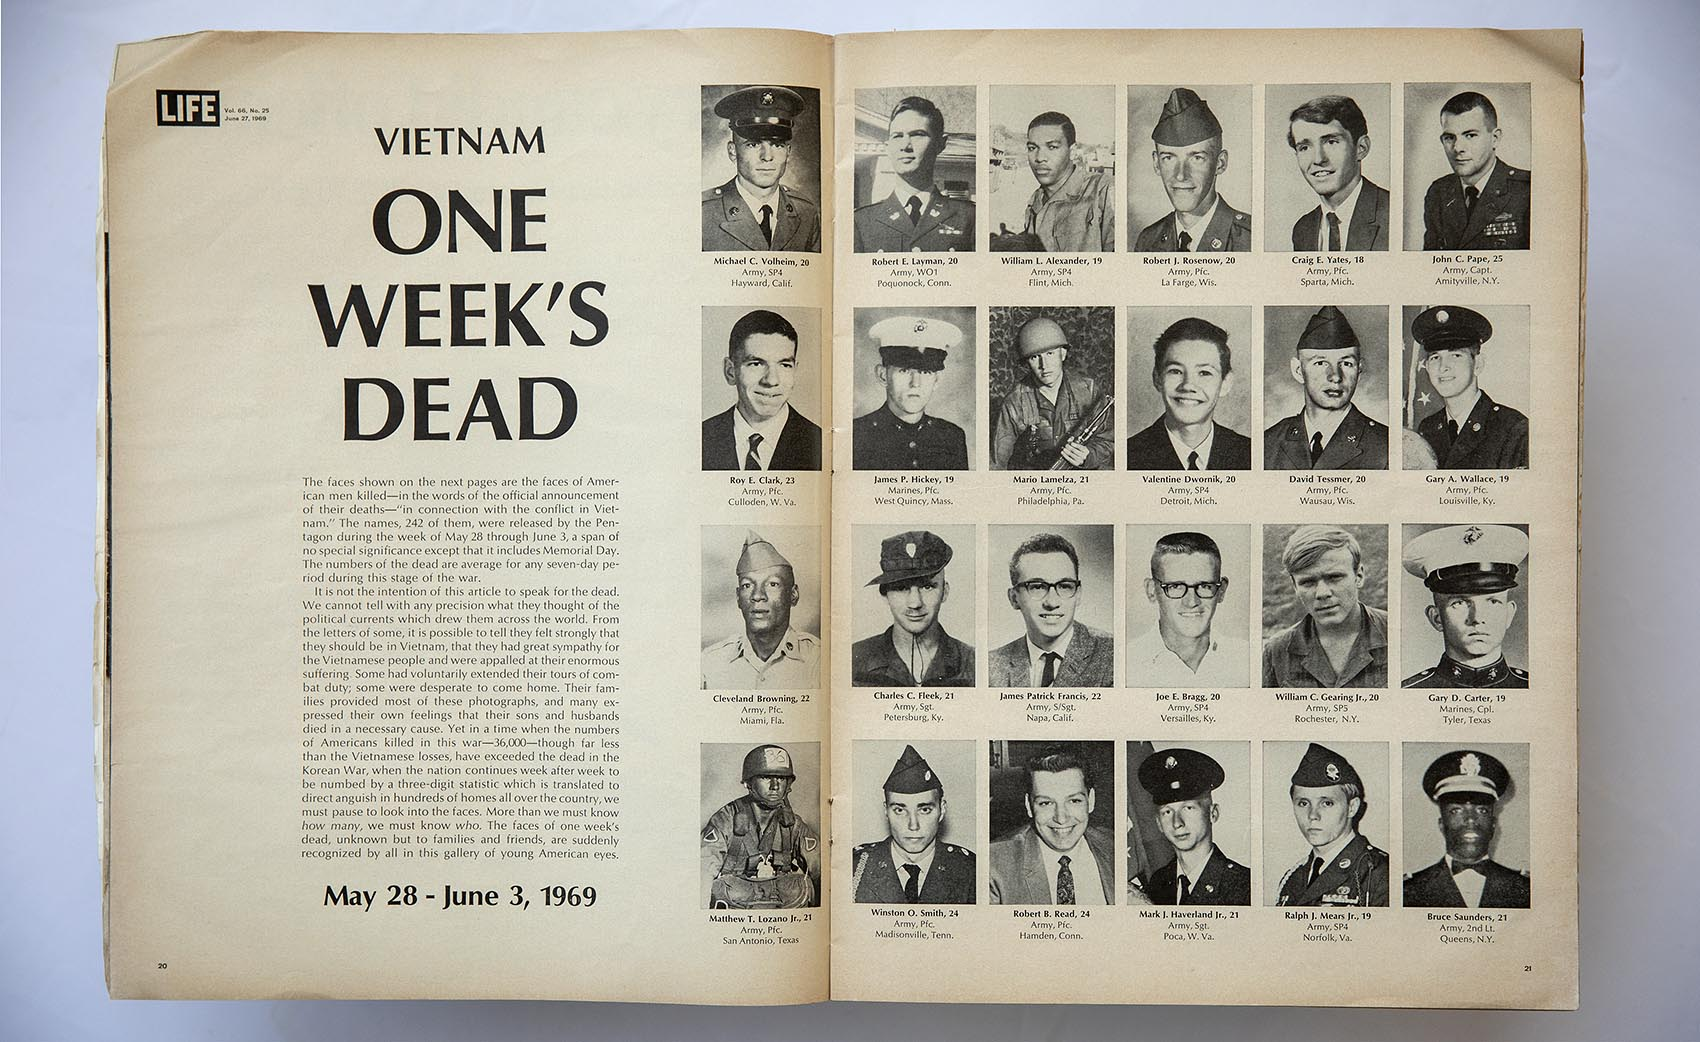 Look At These Beautiful Boys In 1969 Life Magazine Published The Faces Of Americans Killed In Vietnam Here Now